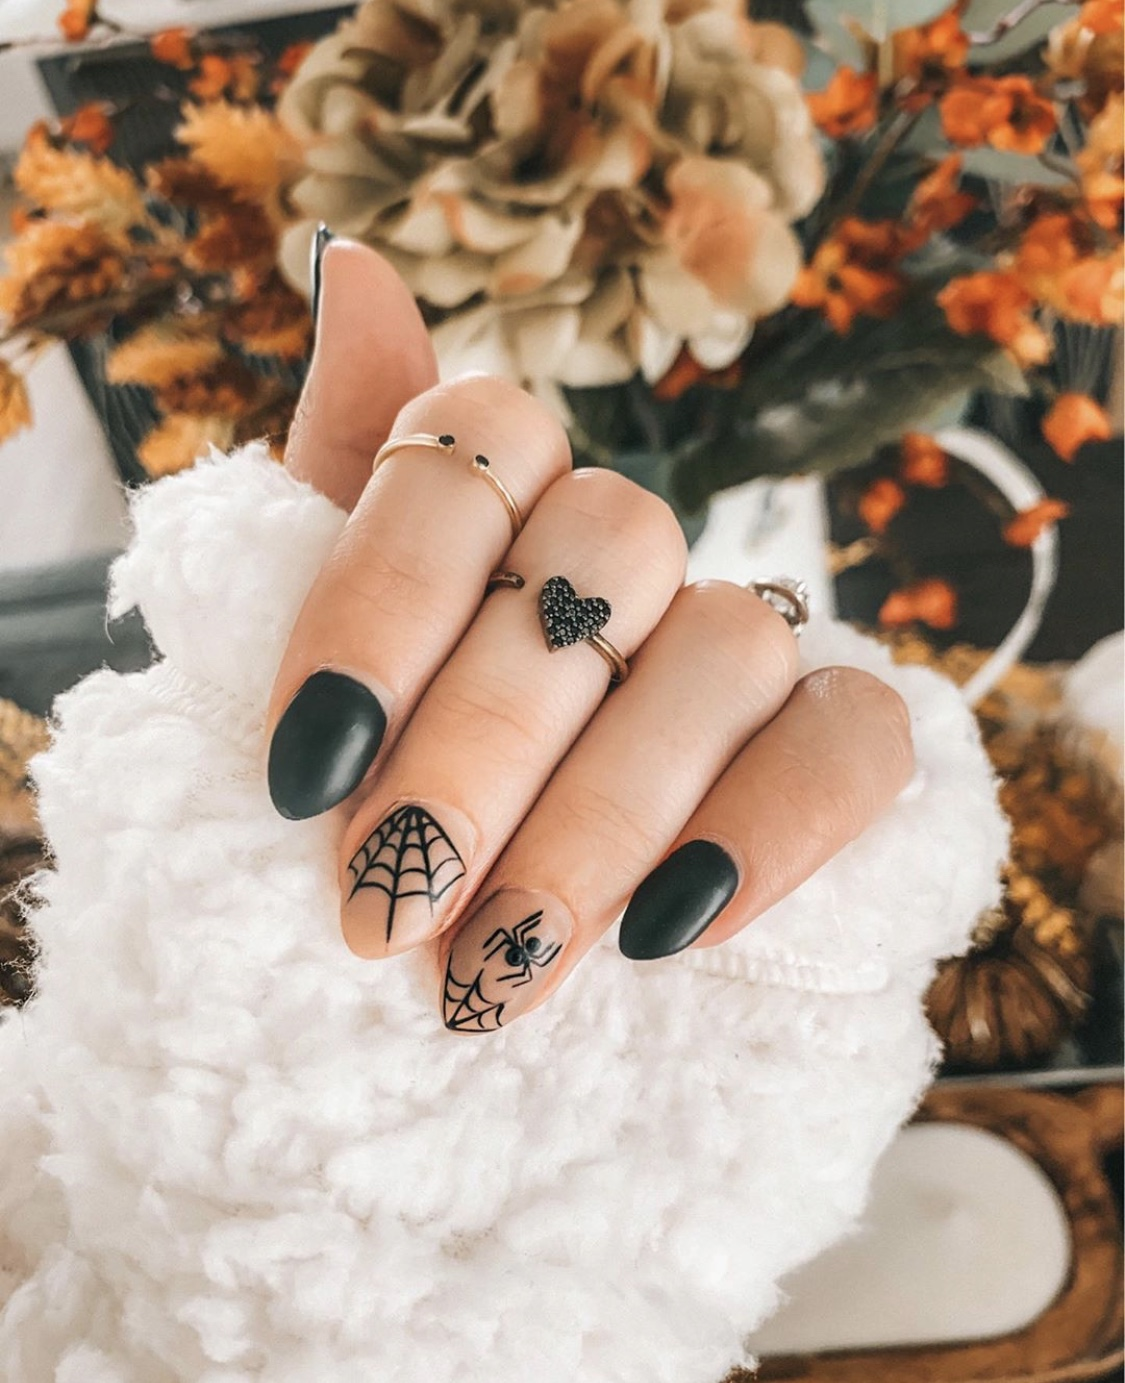 Nail Art Designs by popular Austin beauty blog, Dressed to Kill: image of a woman with spider design nail art and wearing Mejuri rings.